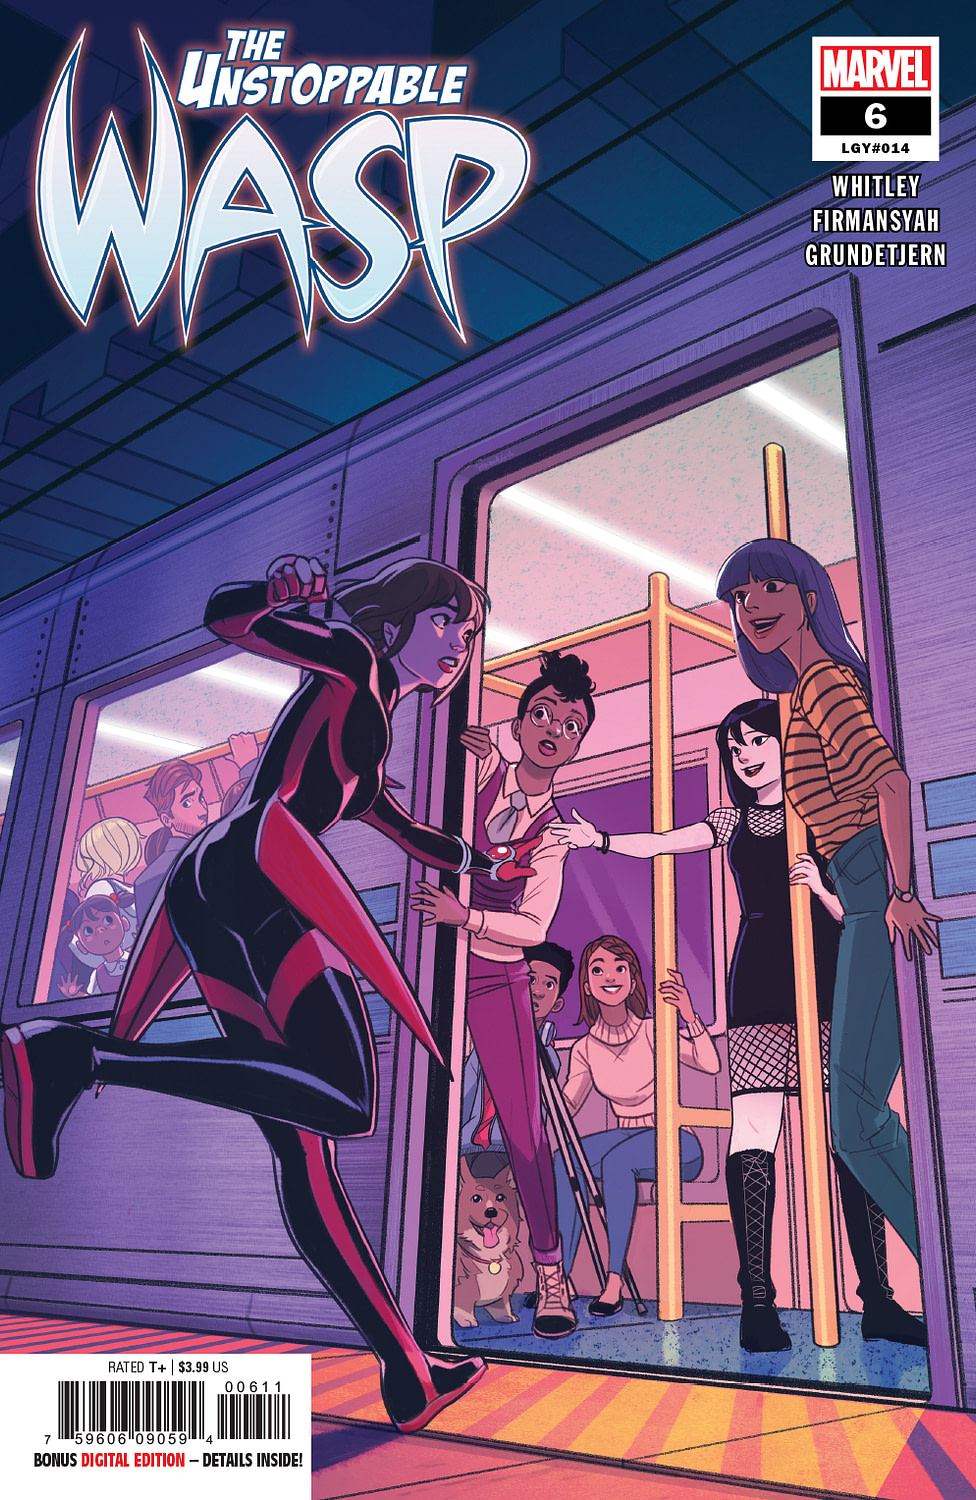 Where Nadia Can Stick Her Privileged, Ableist Apology in Next Week's Unstoppable Wasp #6